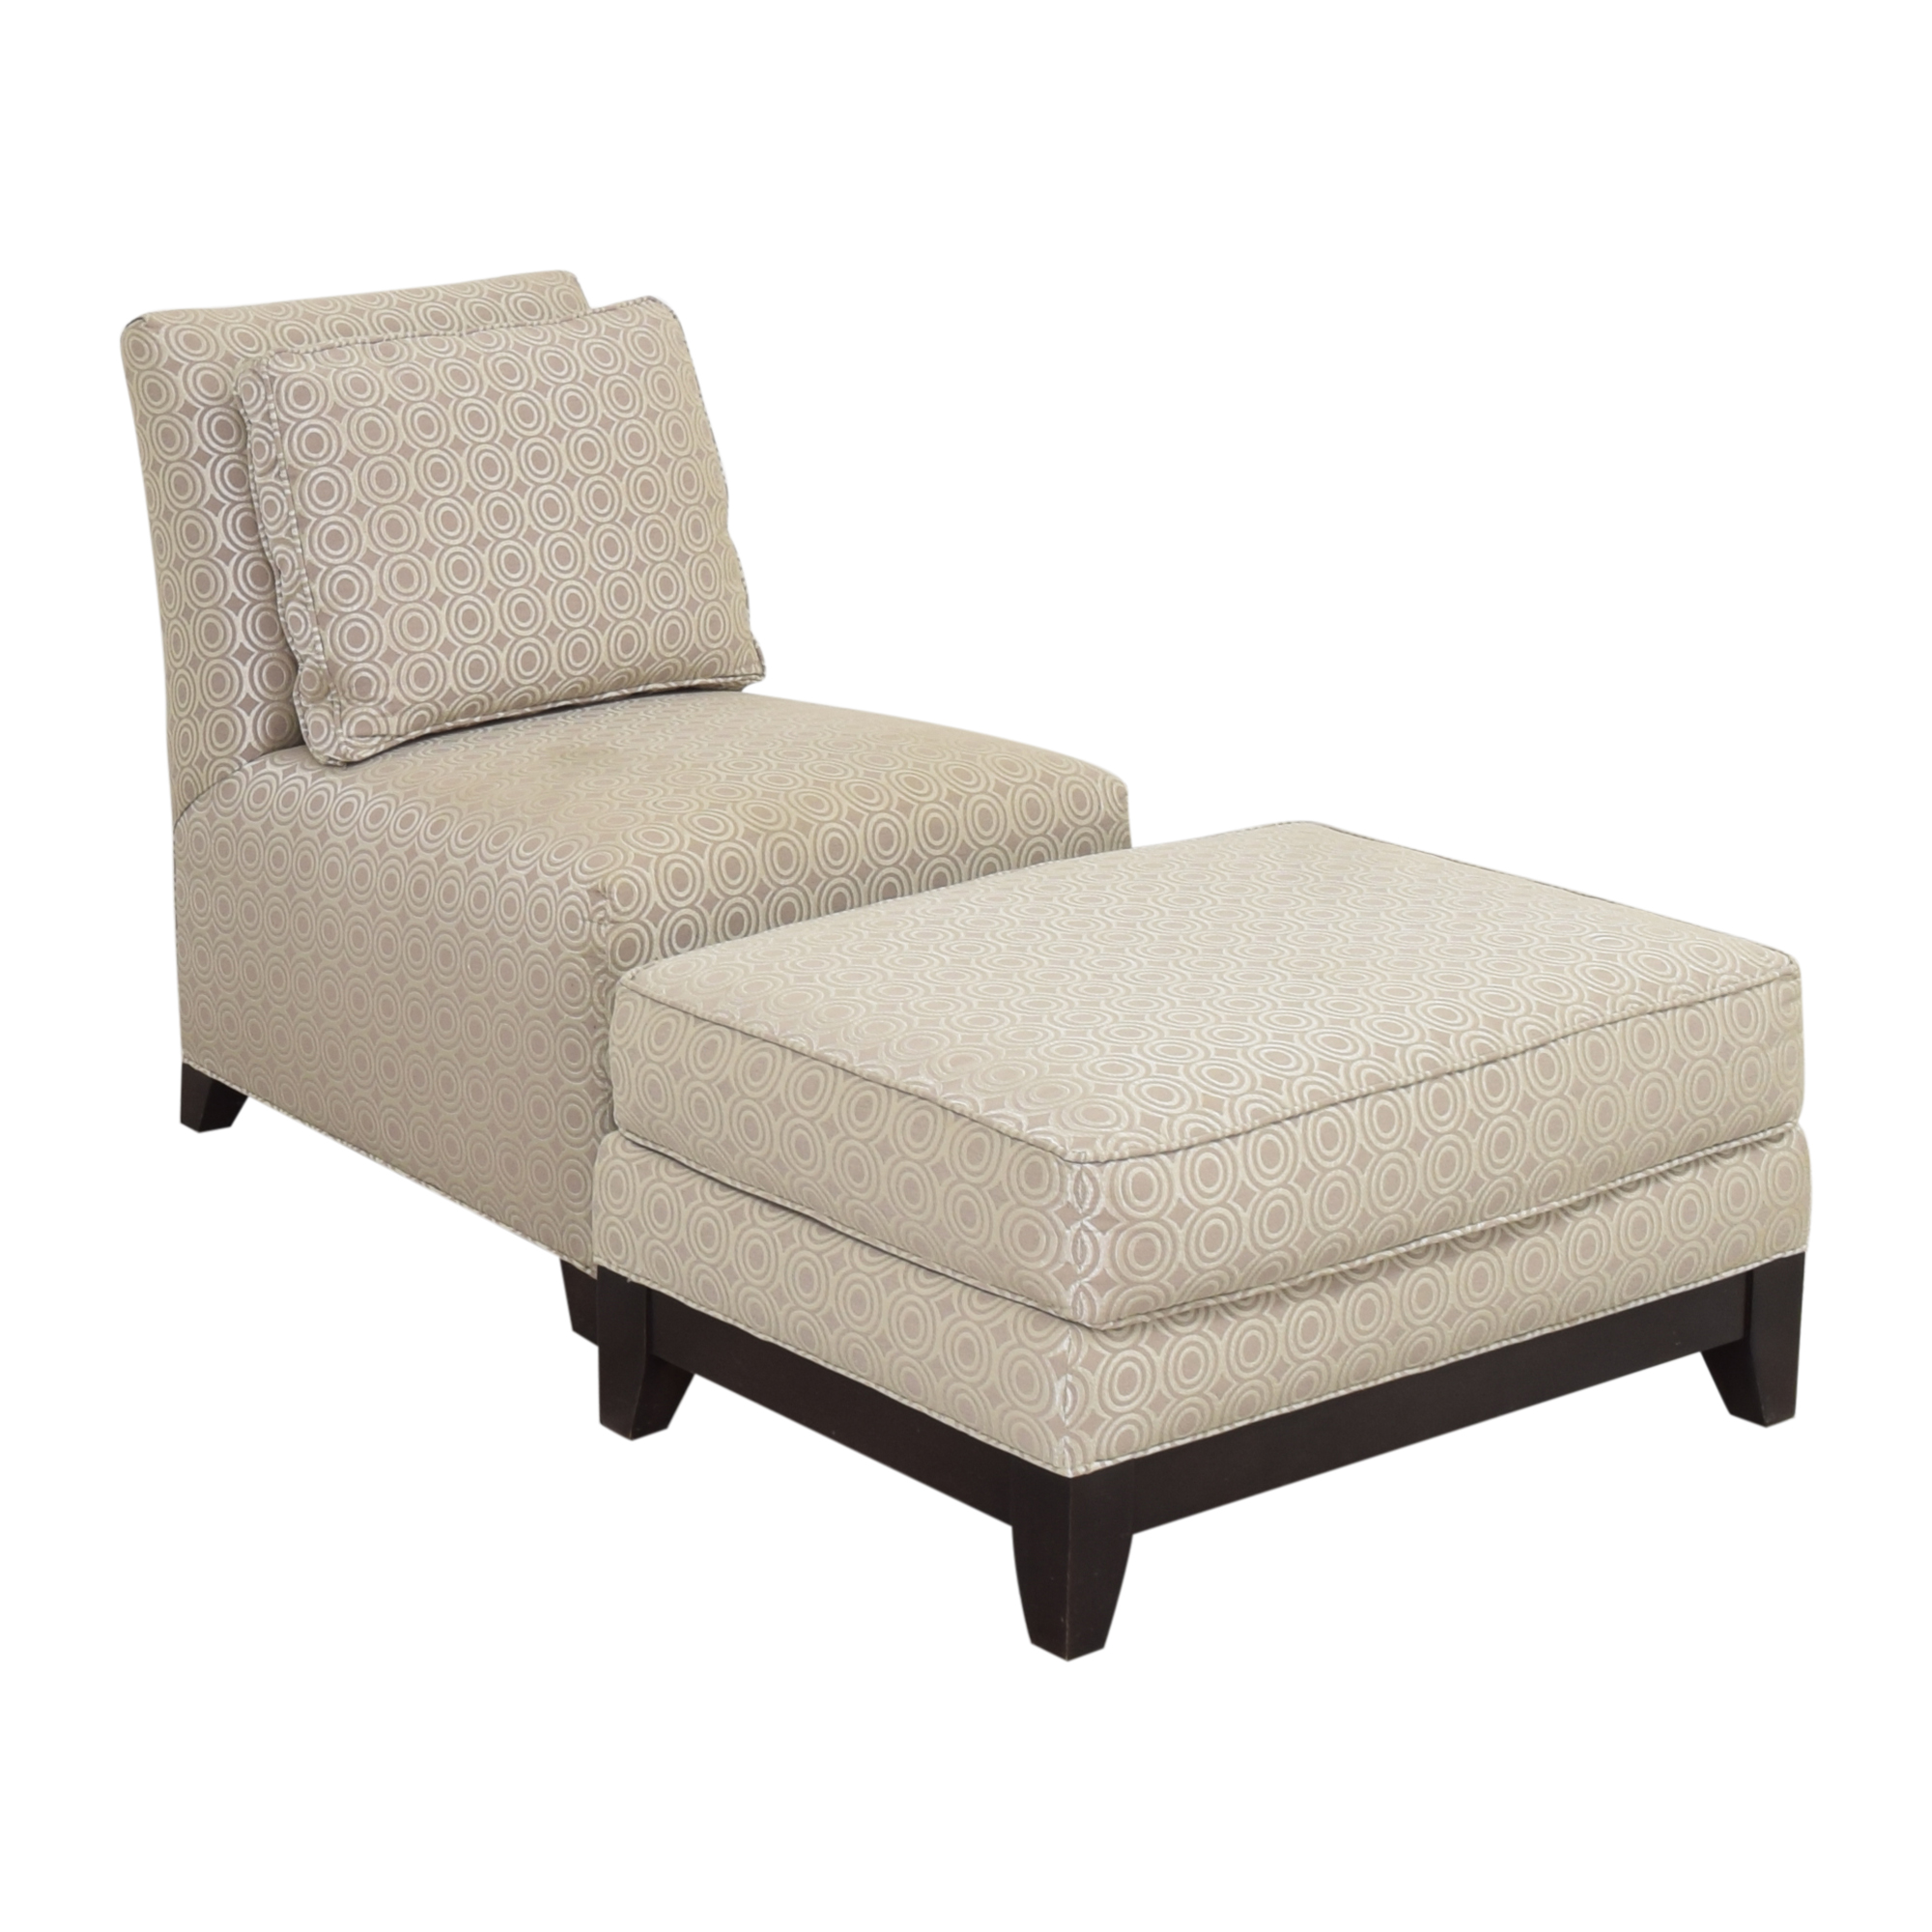 Ethan Allen Ethan Allen Slipper Accent Chair with Ottoman used